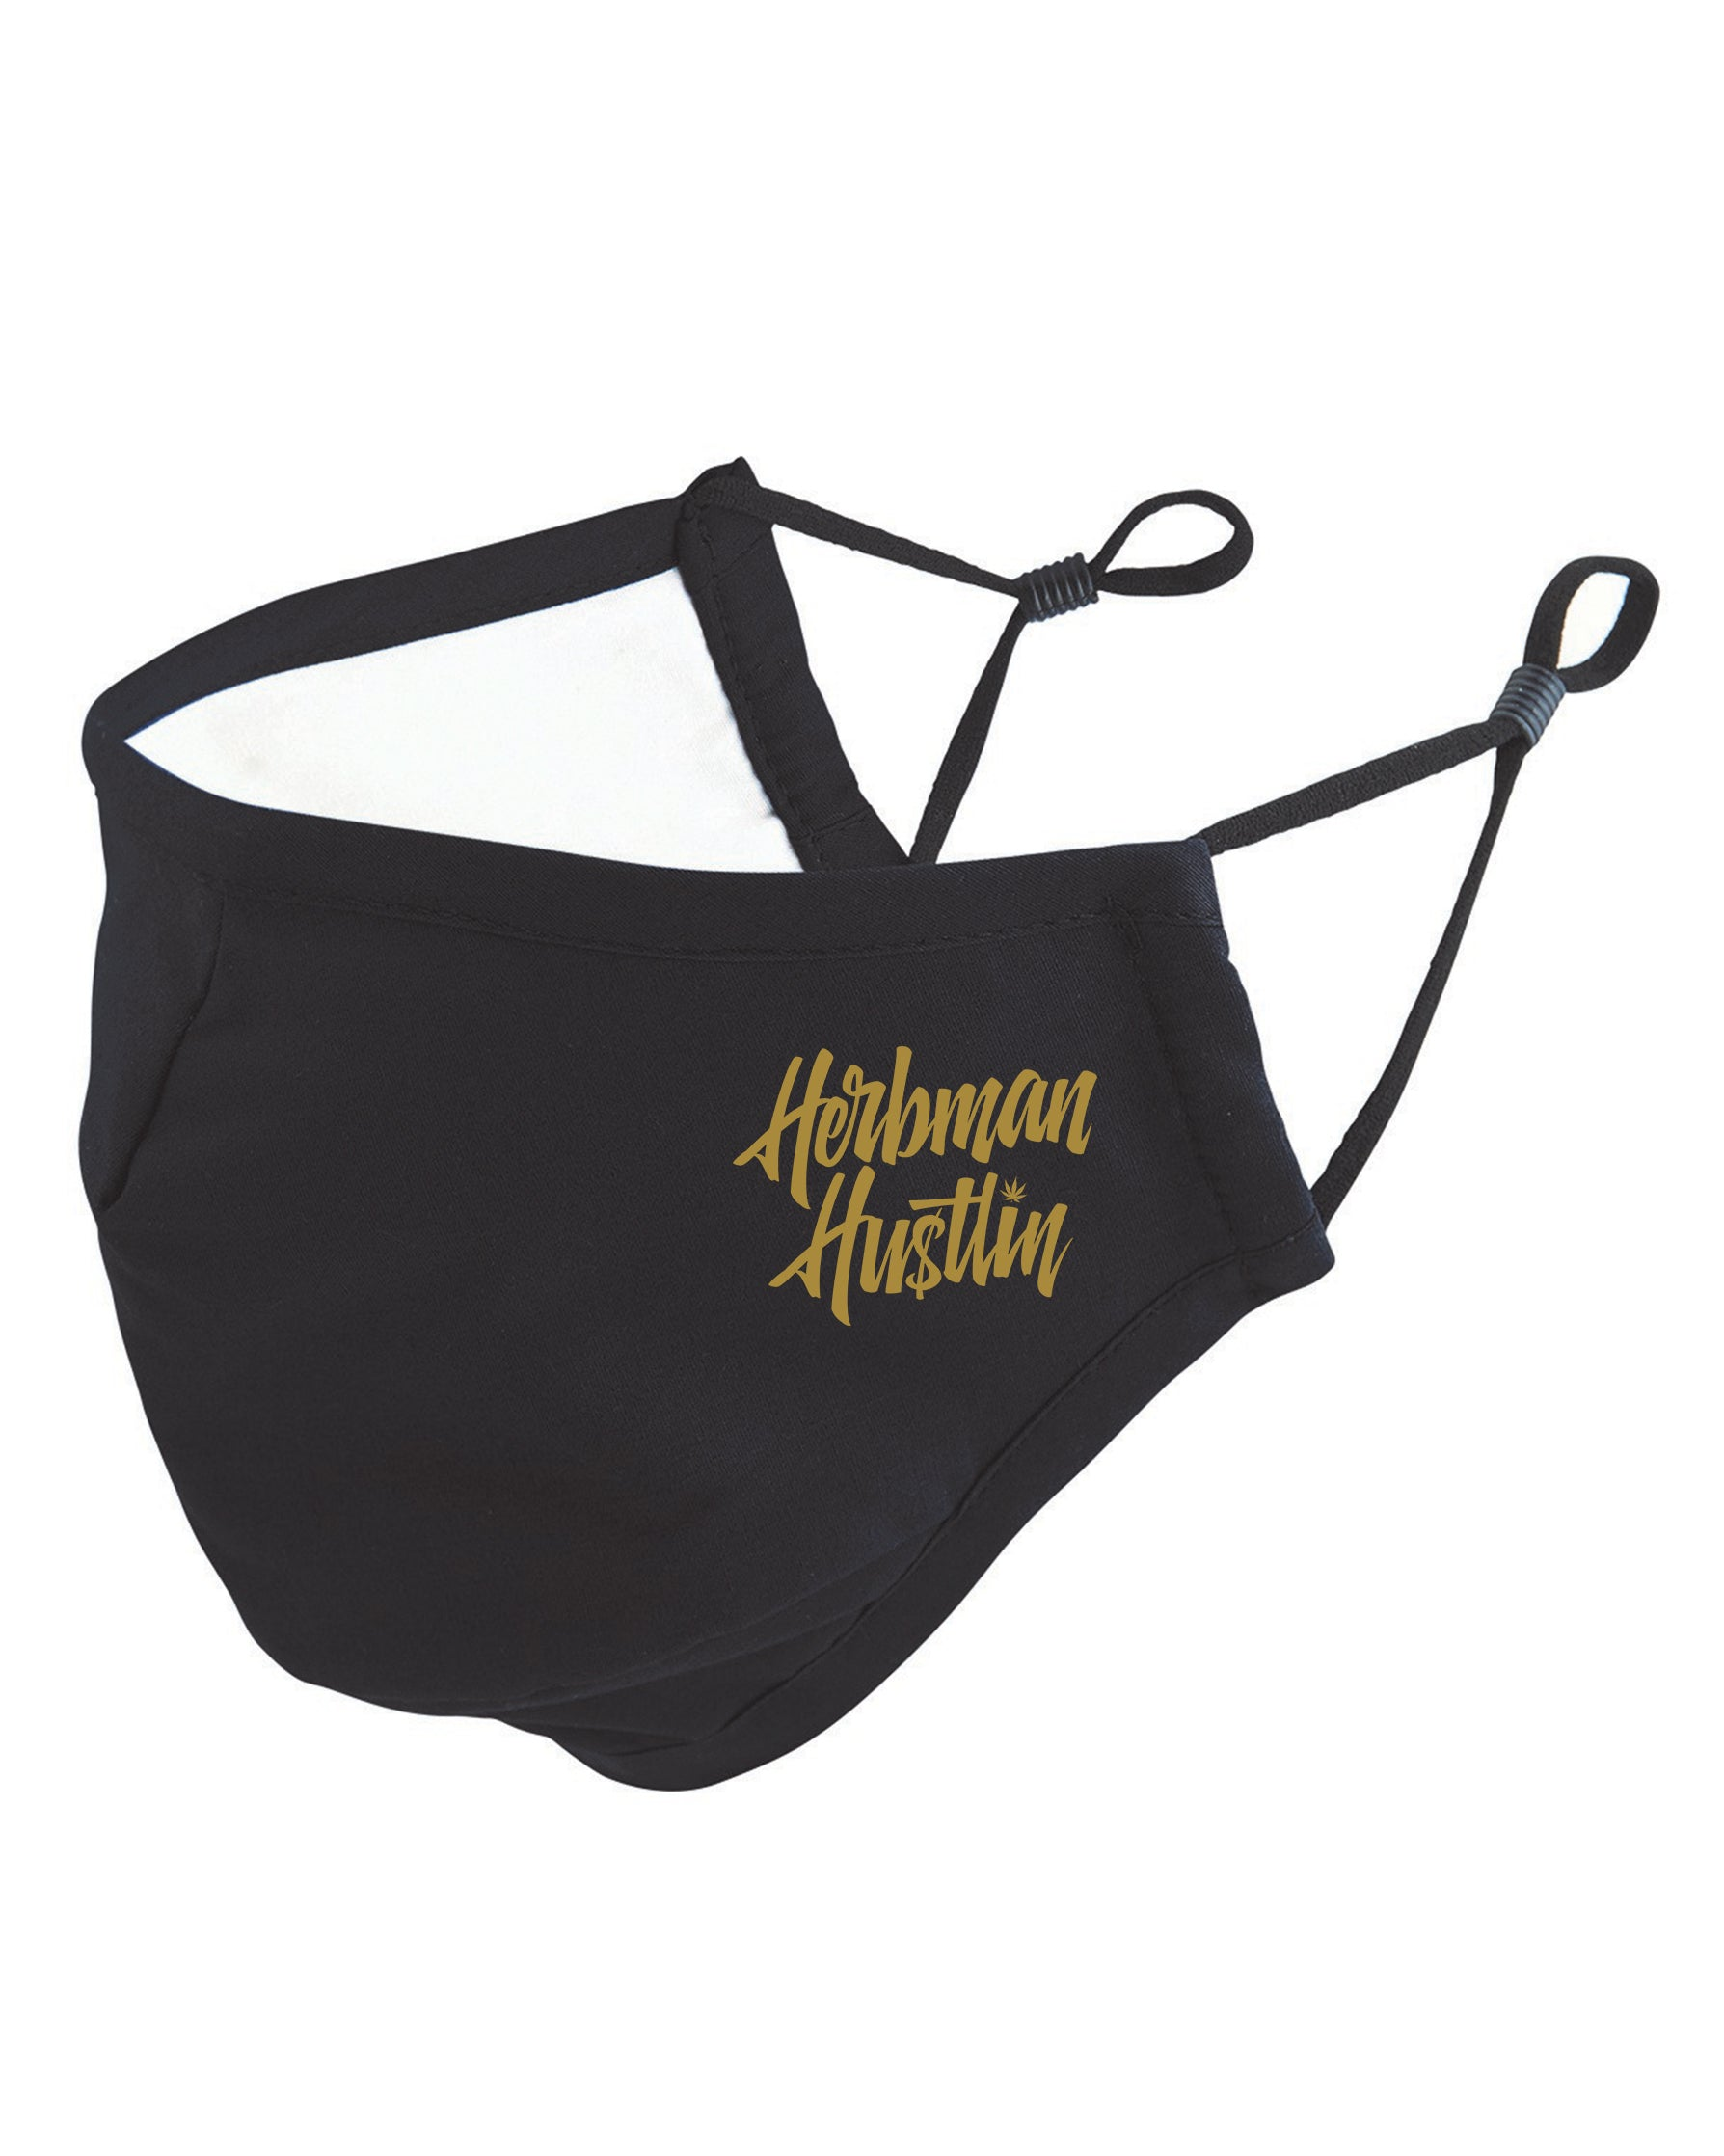 Herbman Hustlin Script 3 Layer Mask - Black/Gold